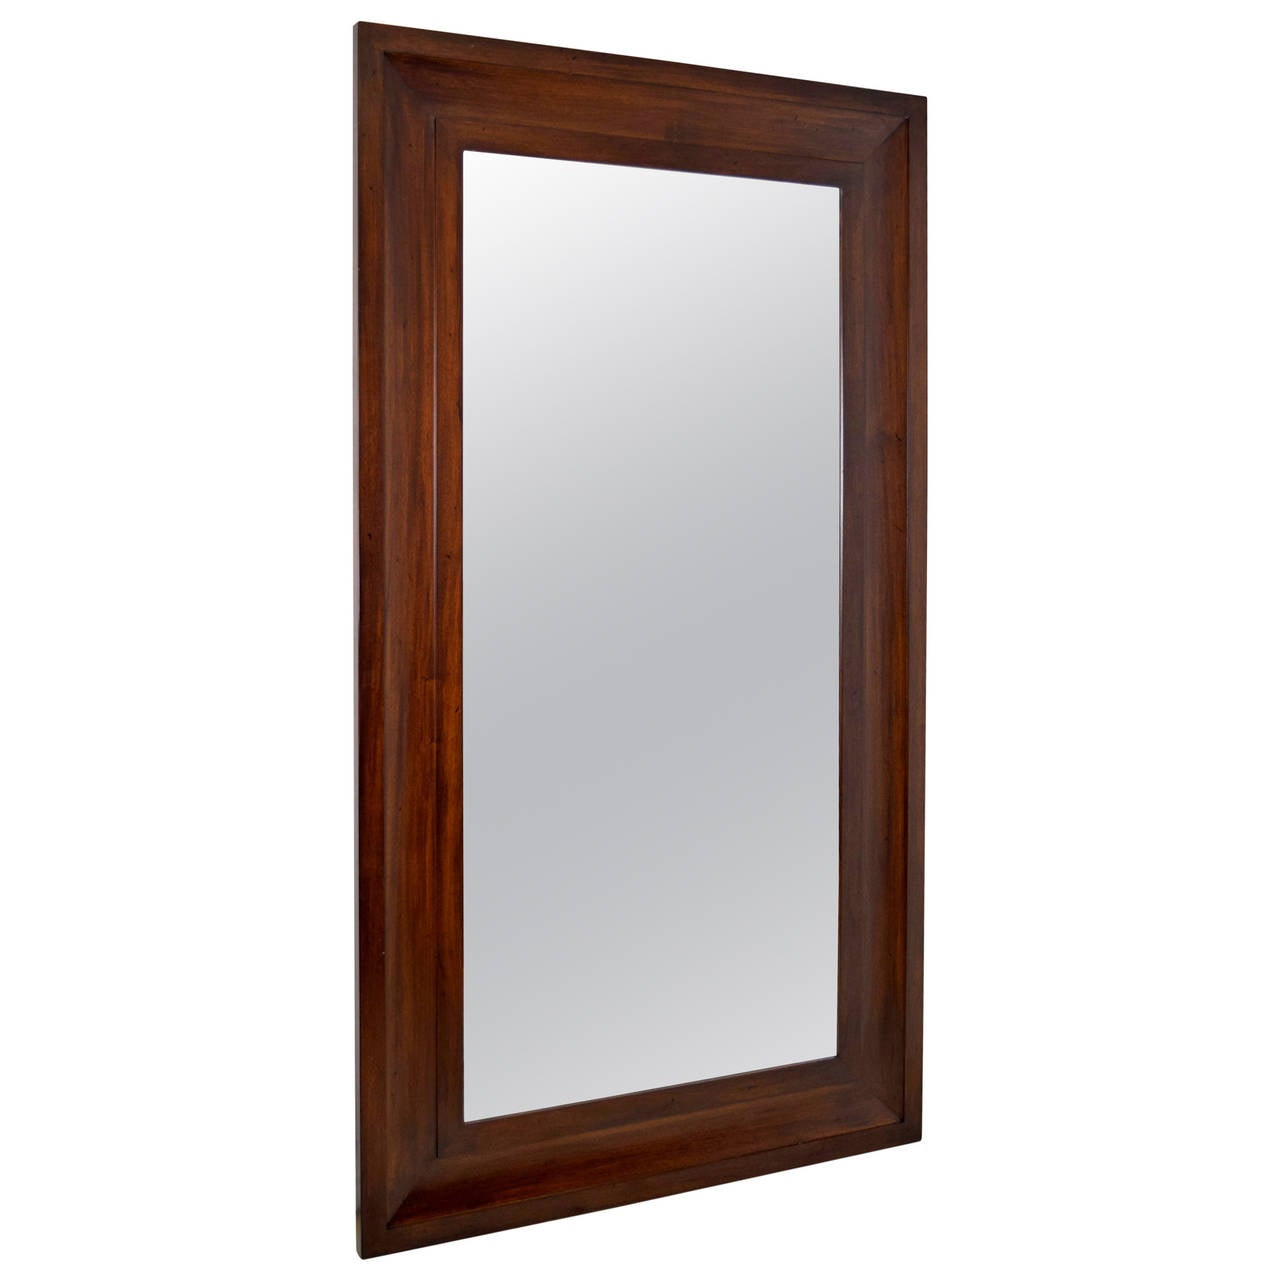 Custom very large mahogany frame wall mirror at 1stdibs for Big framed mirror